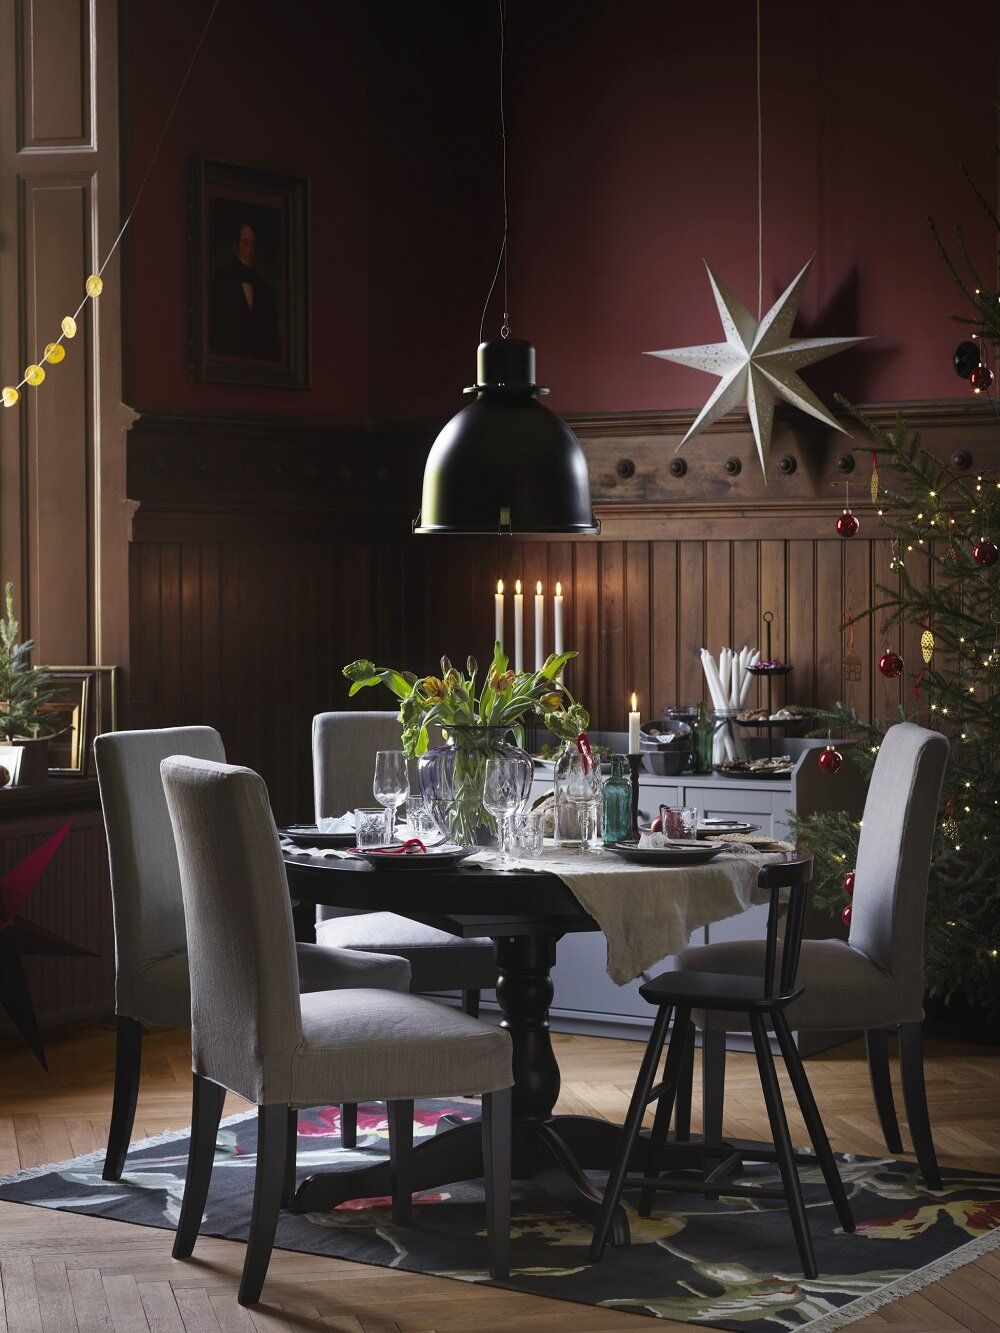 Ikea Christmas Collection 2020 Create Your Own Magical Moments The Nordroom In 2020 Ikea Christmas Ikea Home Decor